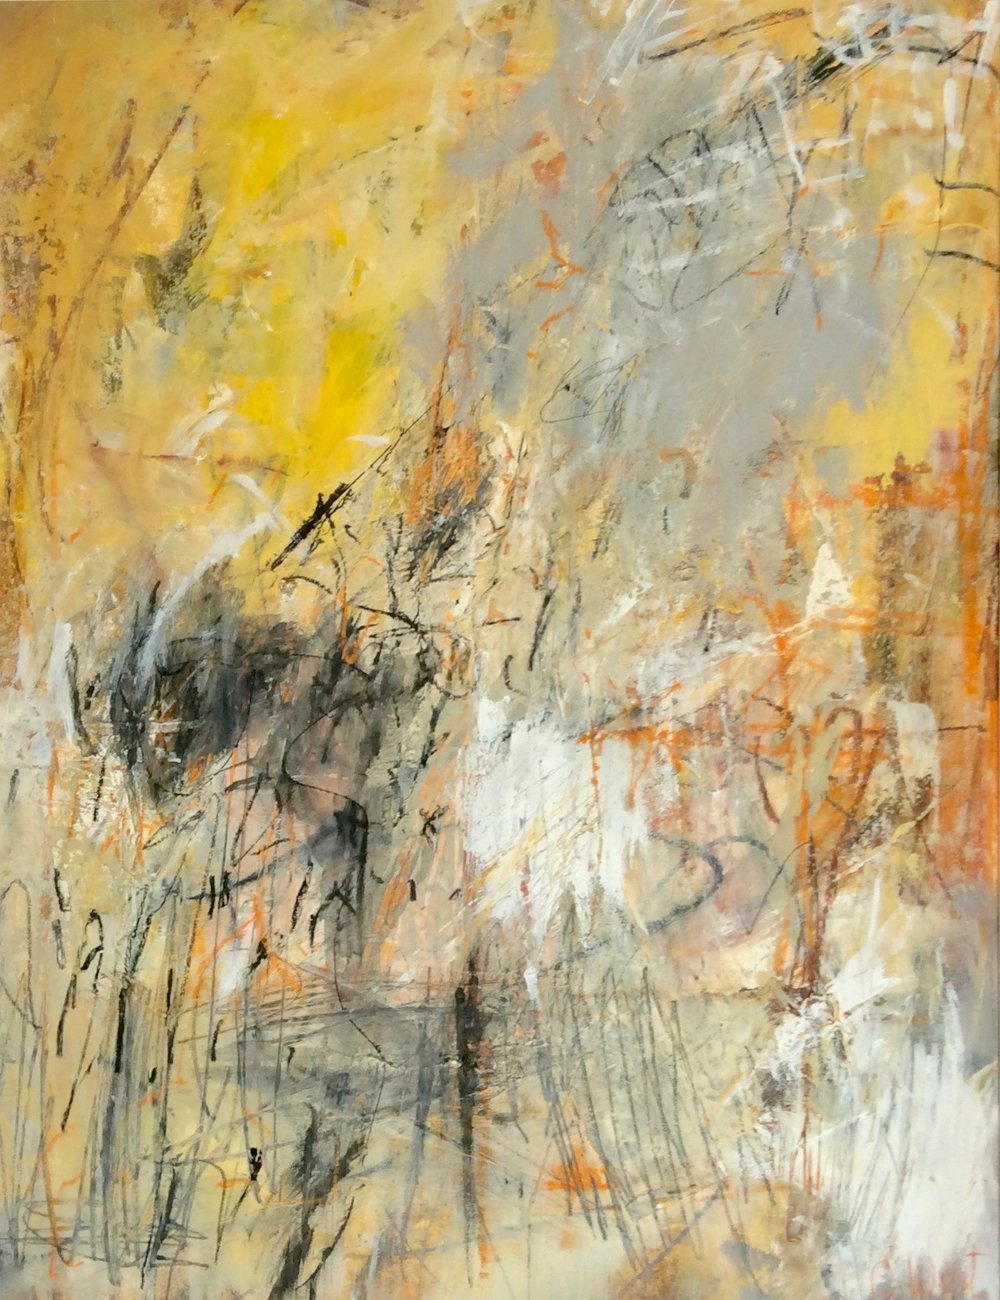 Cristy West - Beehive - 21 x 16 - mixed media on paper larger